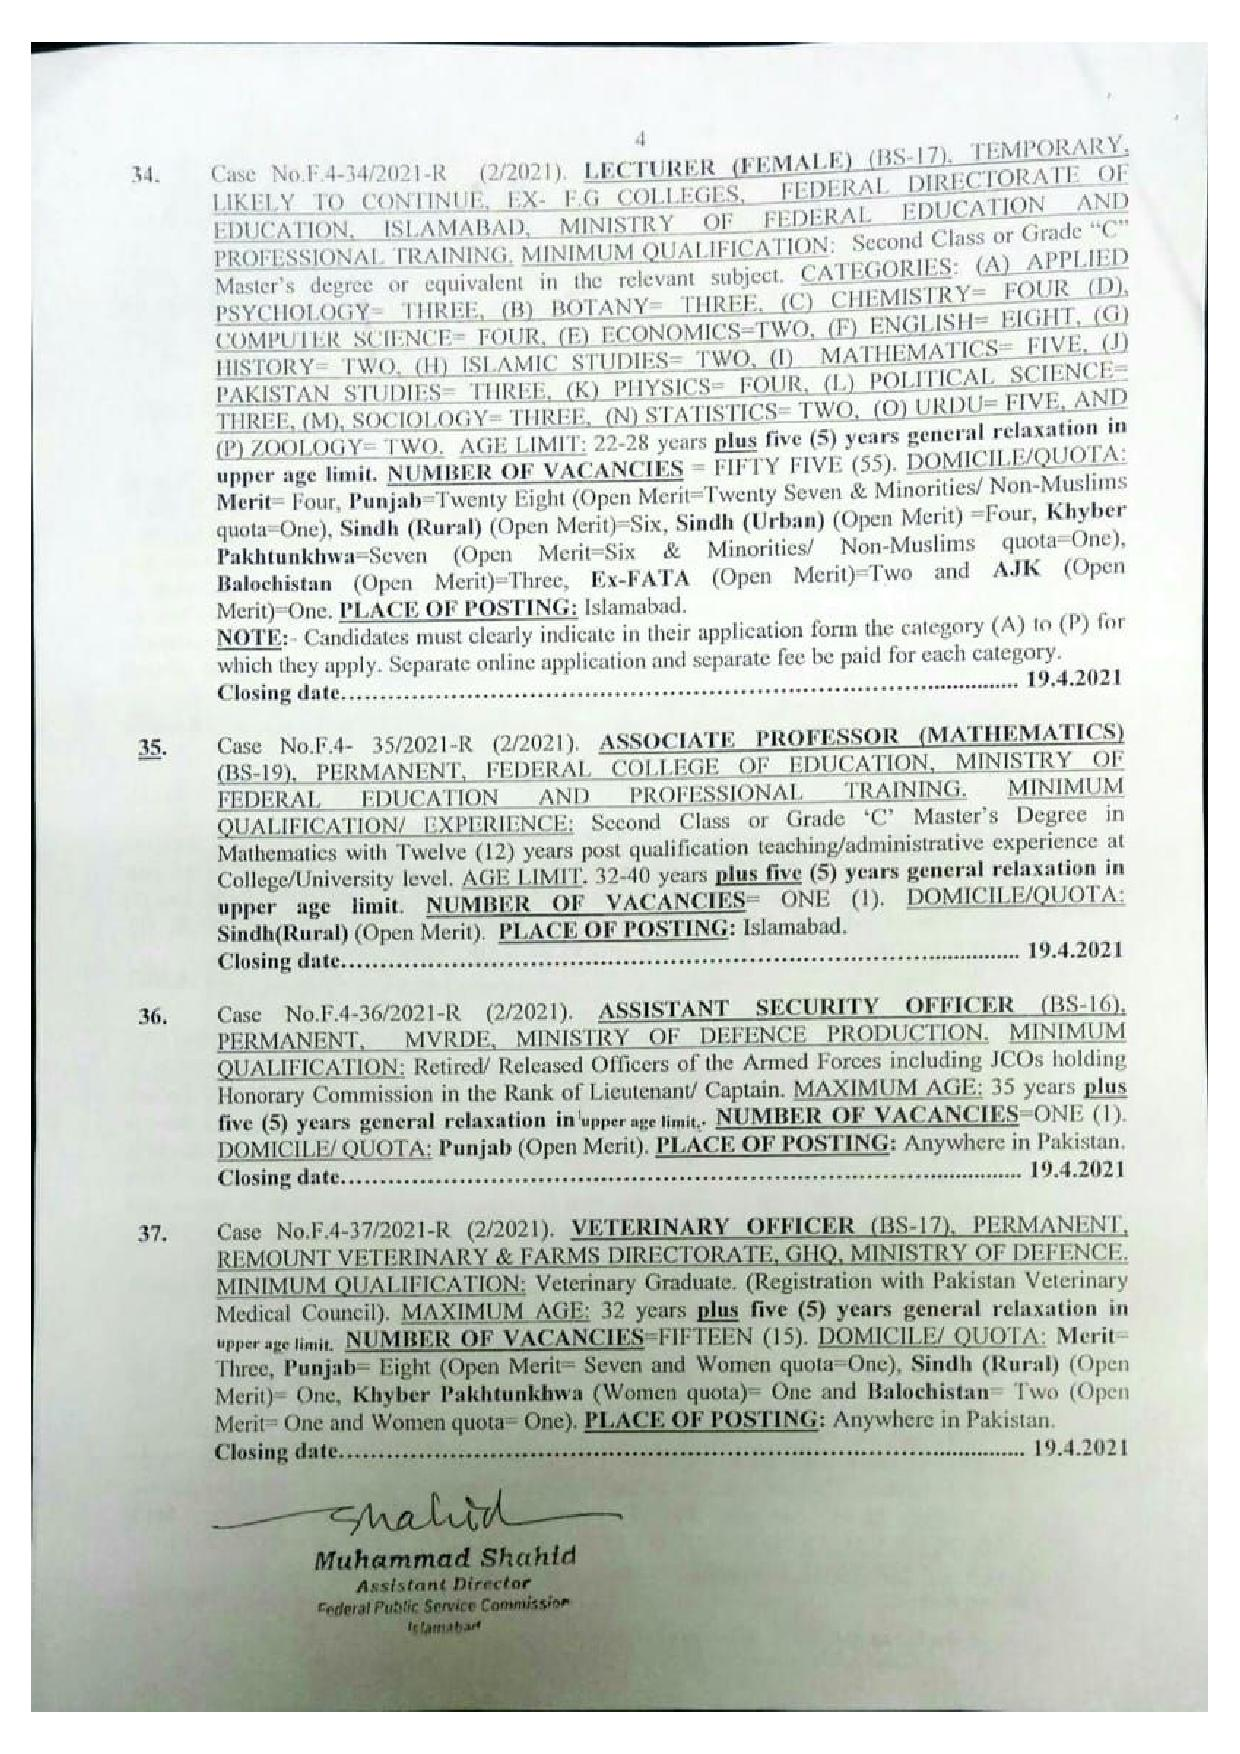 consolidated-Advertisement-2-2021-page-004